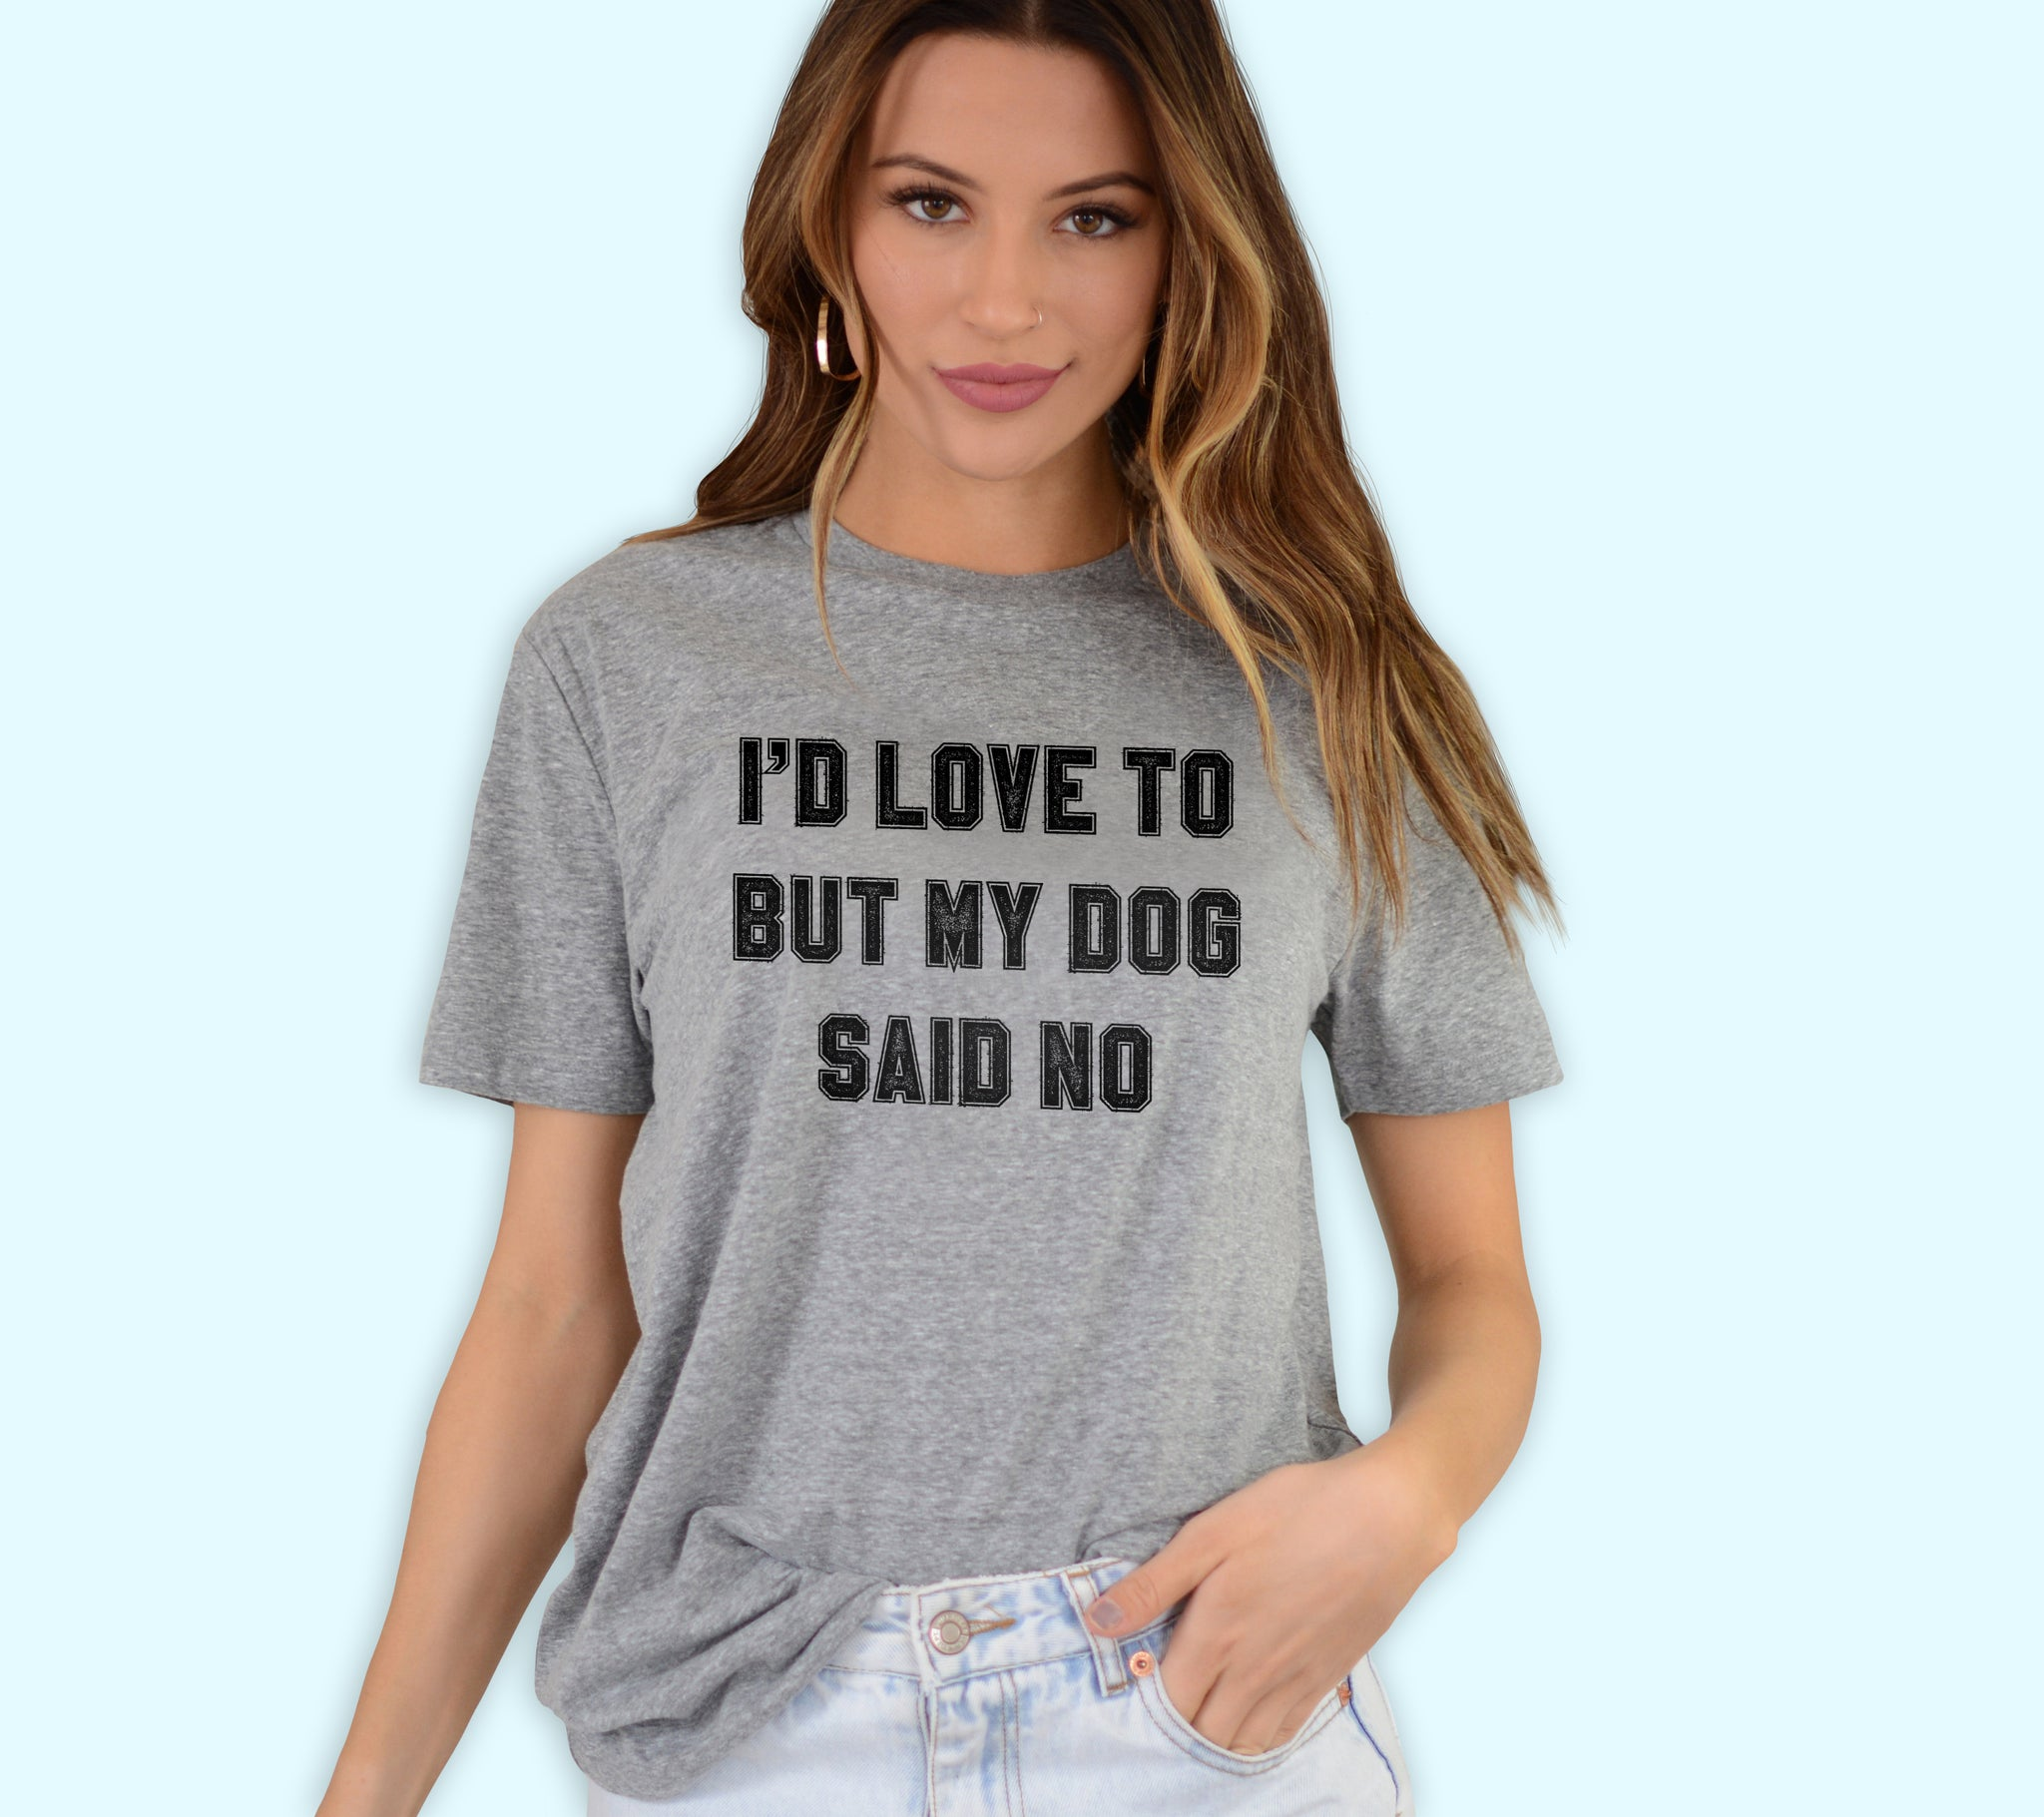 I'd Love To But My Dog Said No Shirt